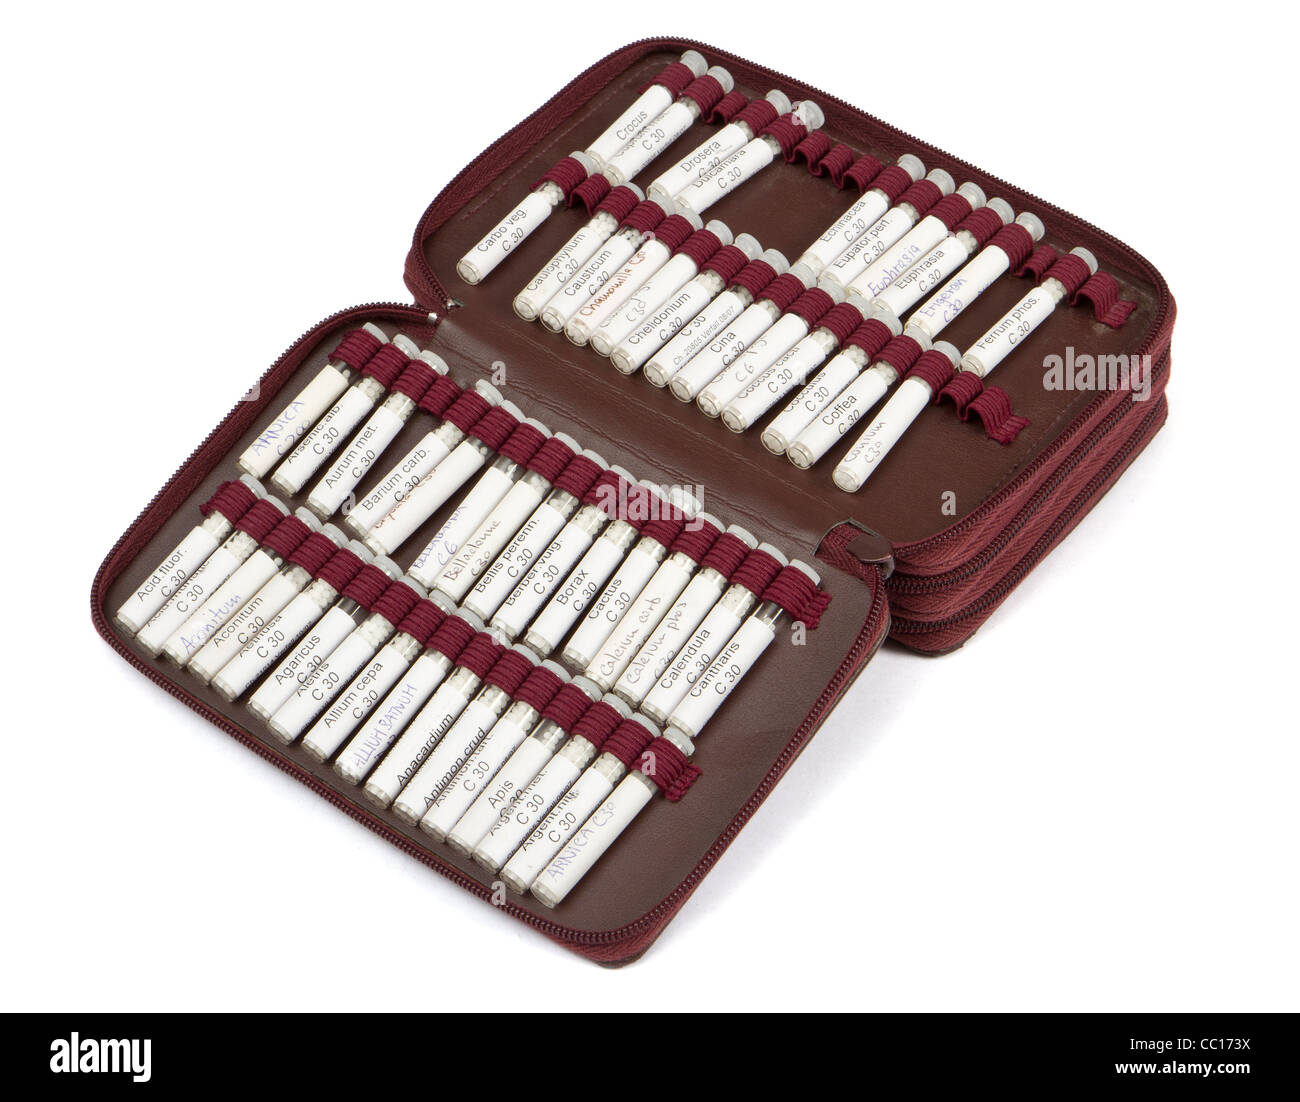 midwifes equipment. many homeopathic globule ordered by name. No product names, just common names of homeopathic - Stock Image